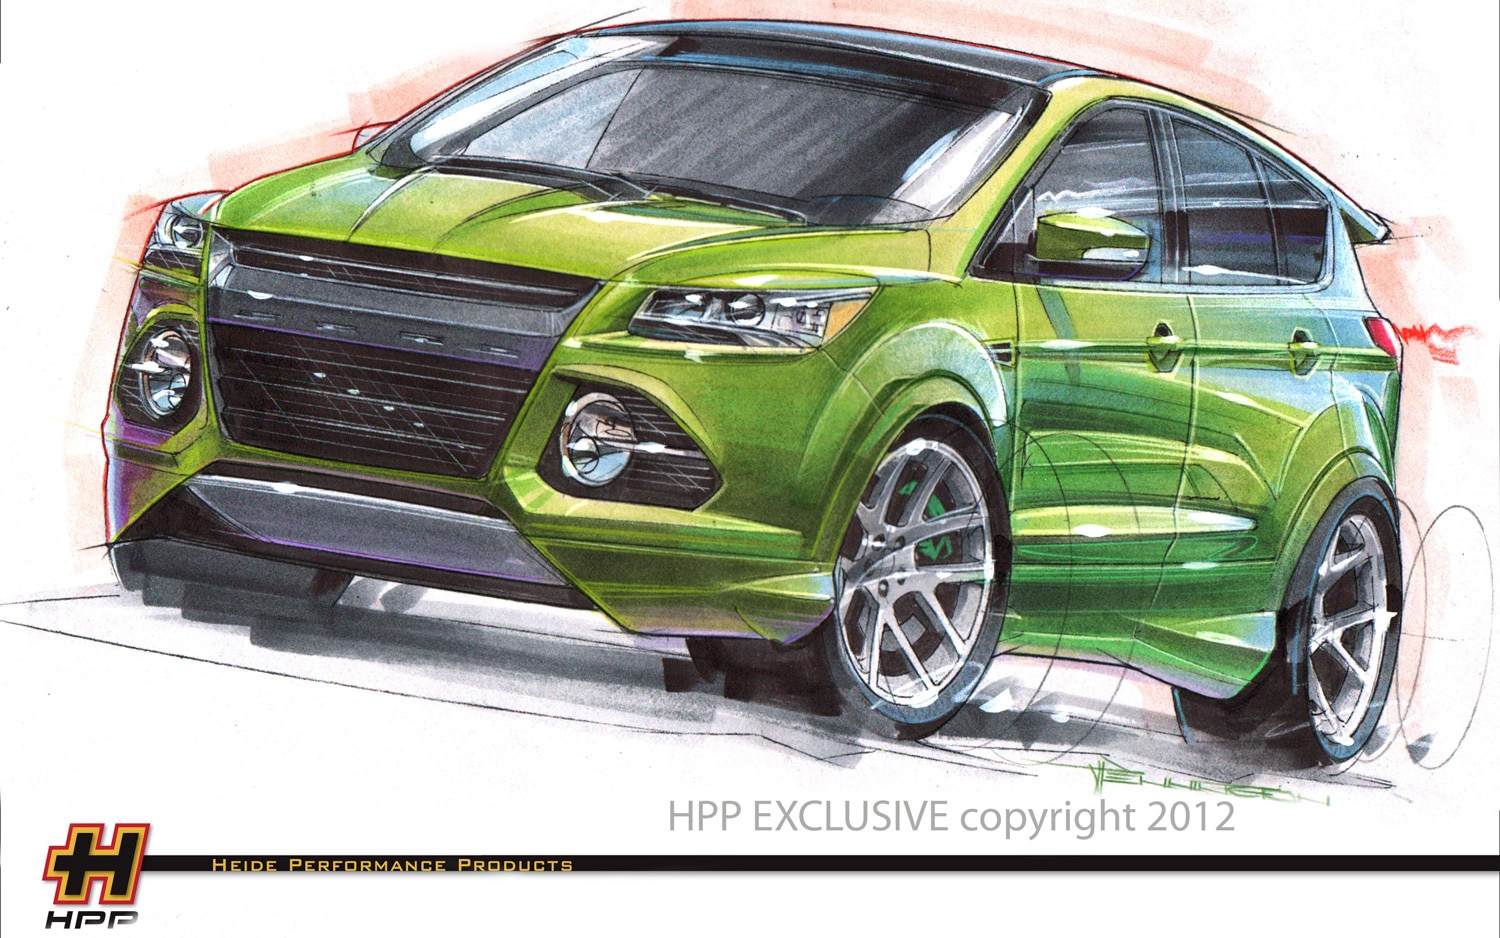 2013 Ford Escape SEMA Show Car By HPP1